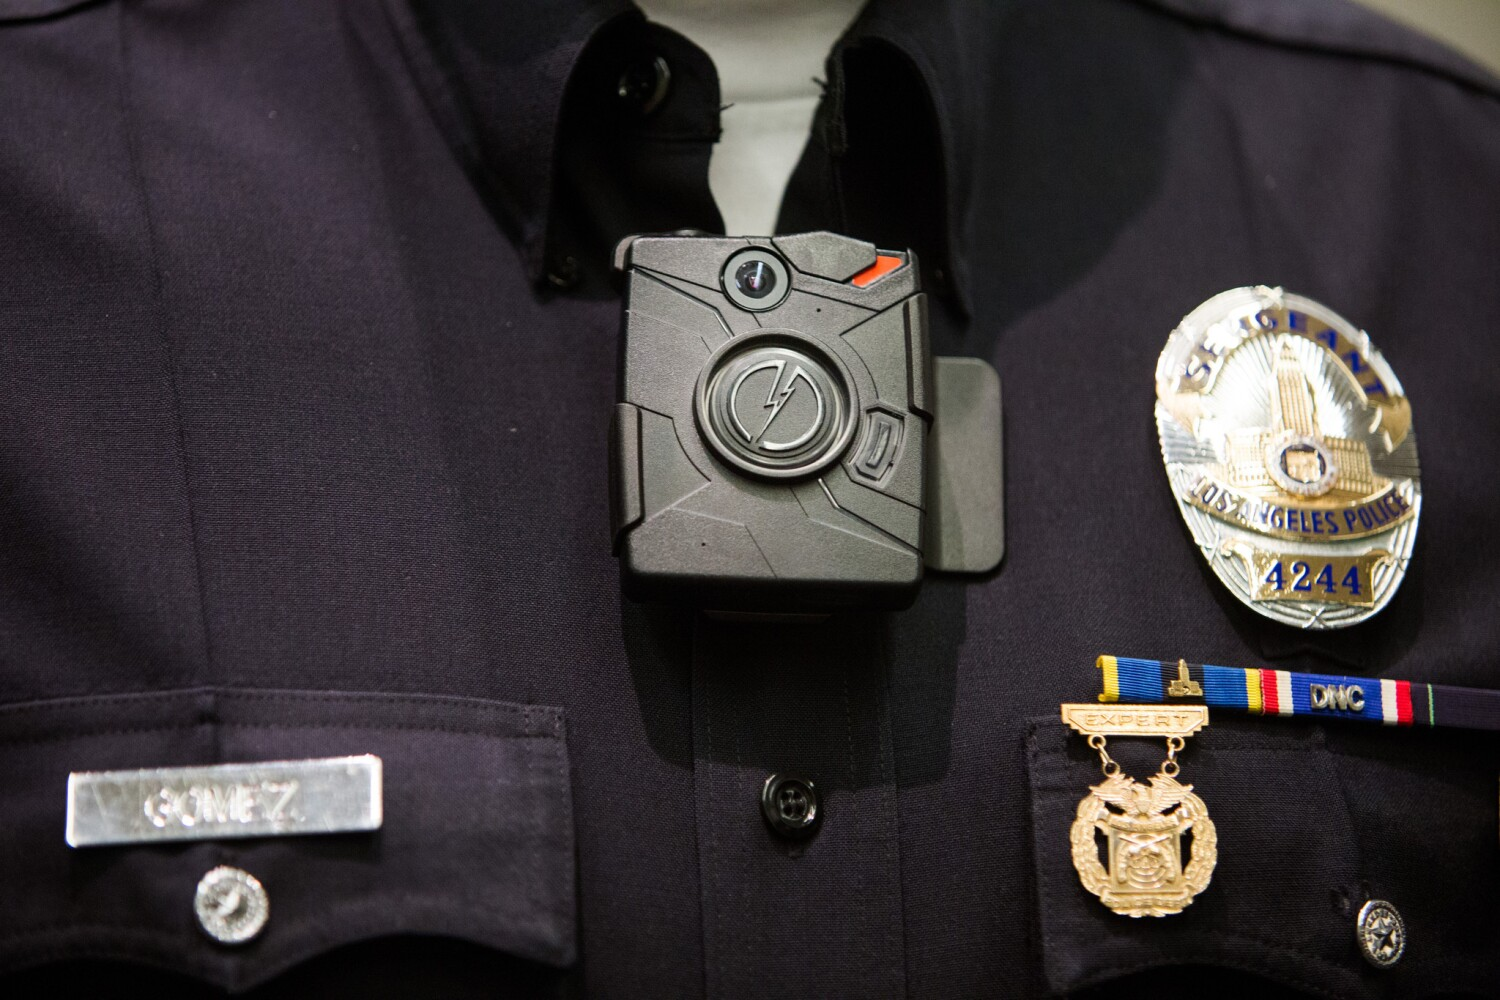 Body cams contradict LAPD's gang designations. It's another milestone in their use